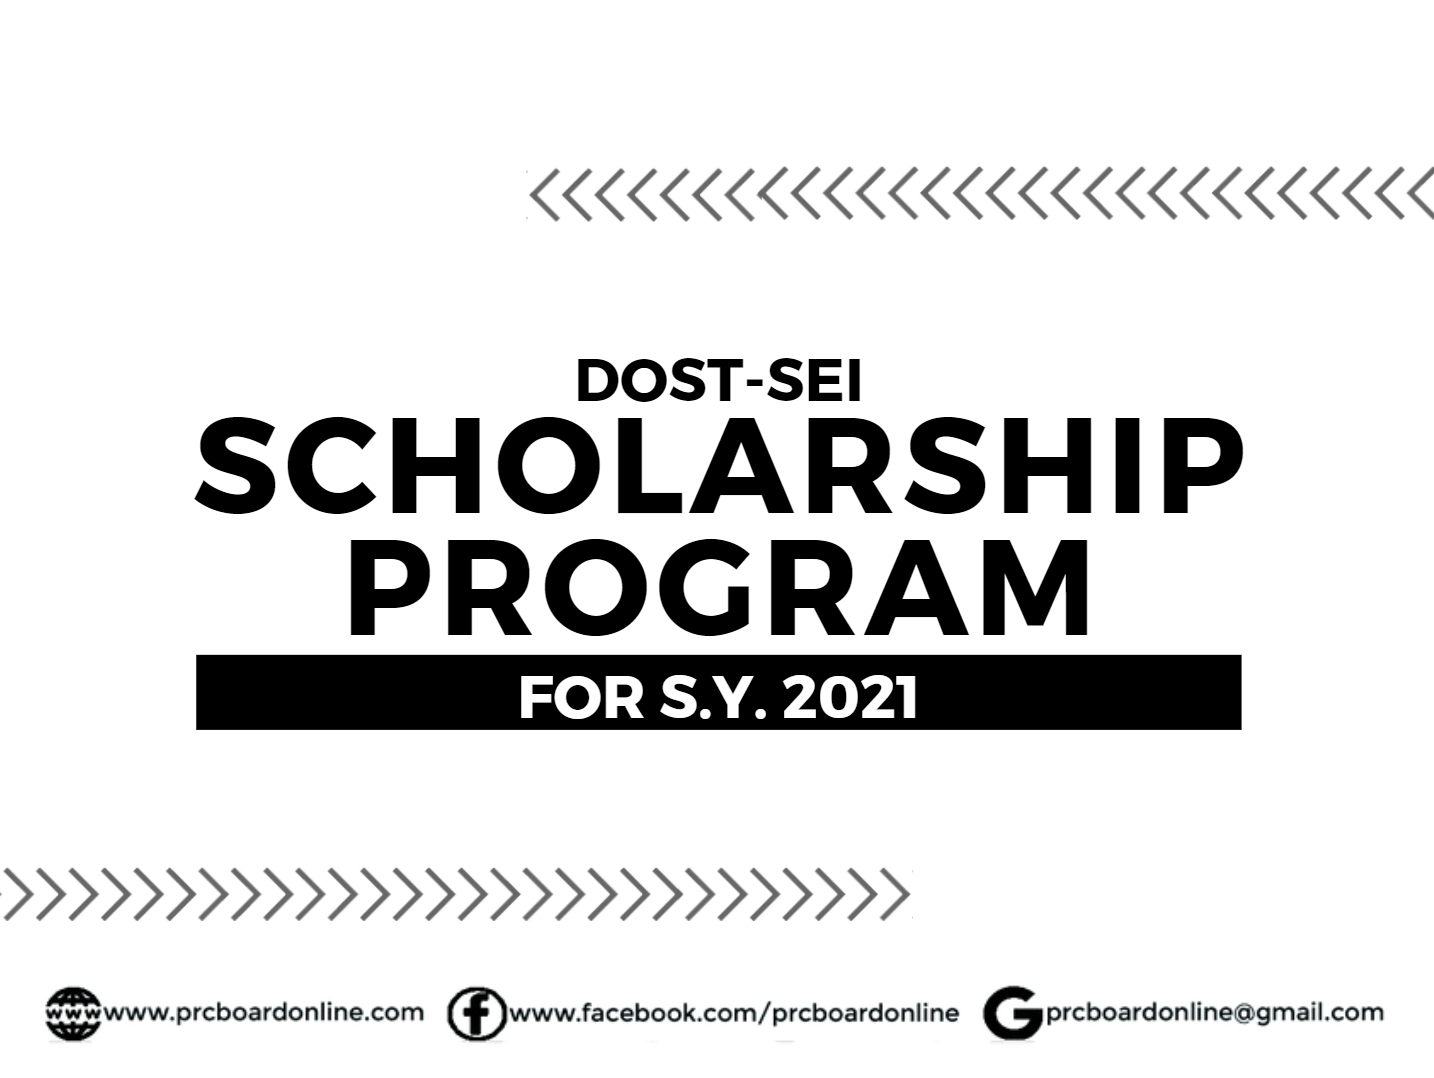 DOST Scholarship for S.Y. 2021: Undergraduate (A.Y. 2020